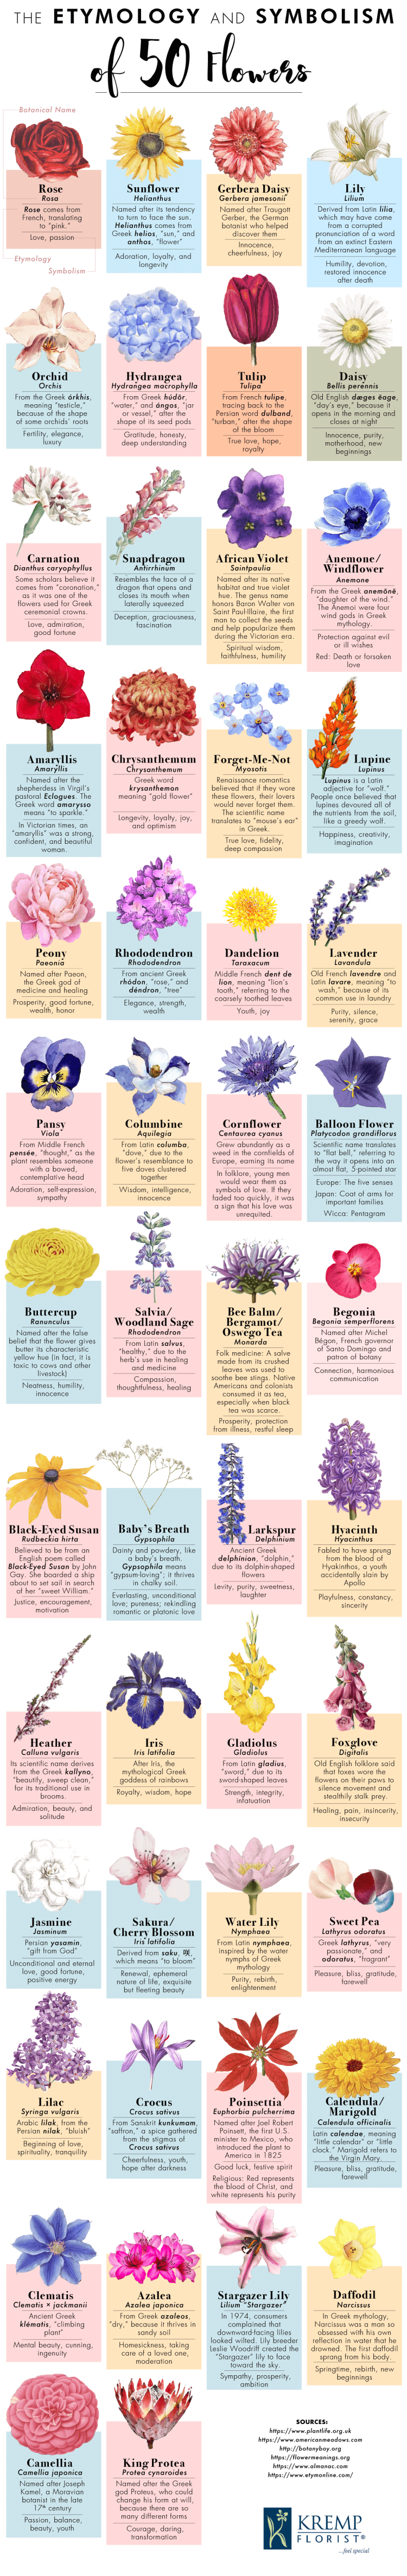 Etymology-symbolism-50-flowers-5_compressed